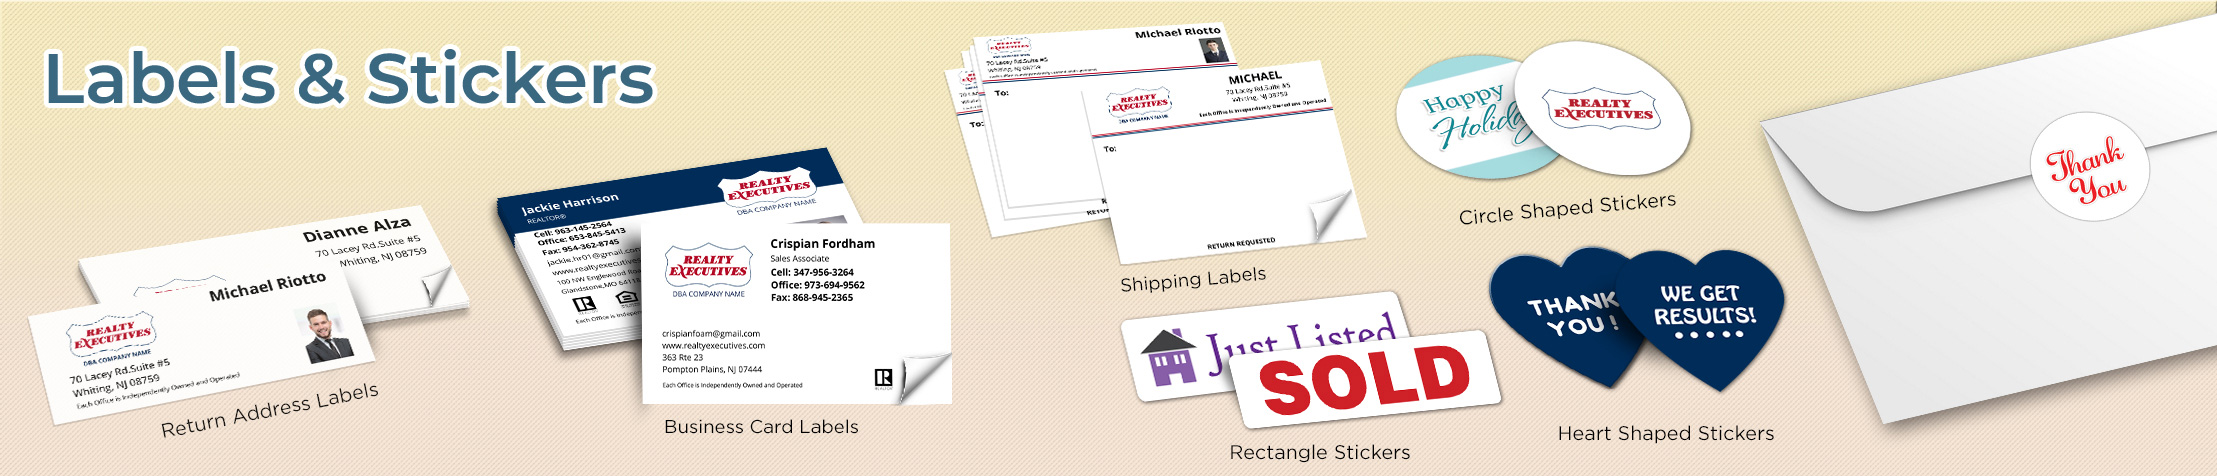 Realty Executives Real Estate Labels and Stickers - Realty Executives  business card labels, return address labels, shipping labels, and assorted stickers | BestPrintBuy.com